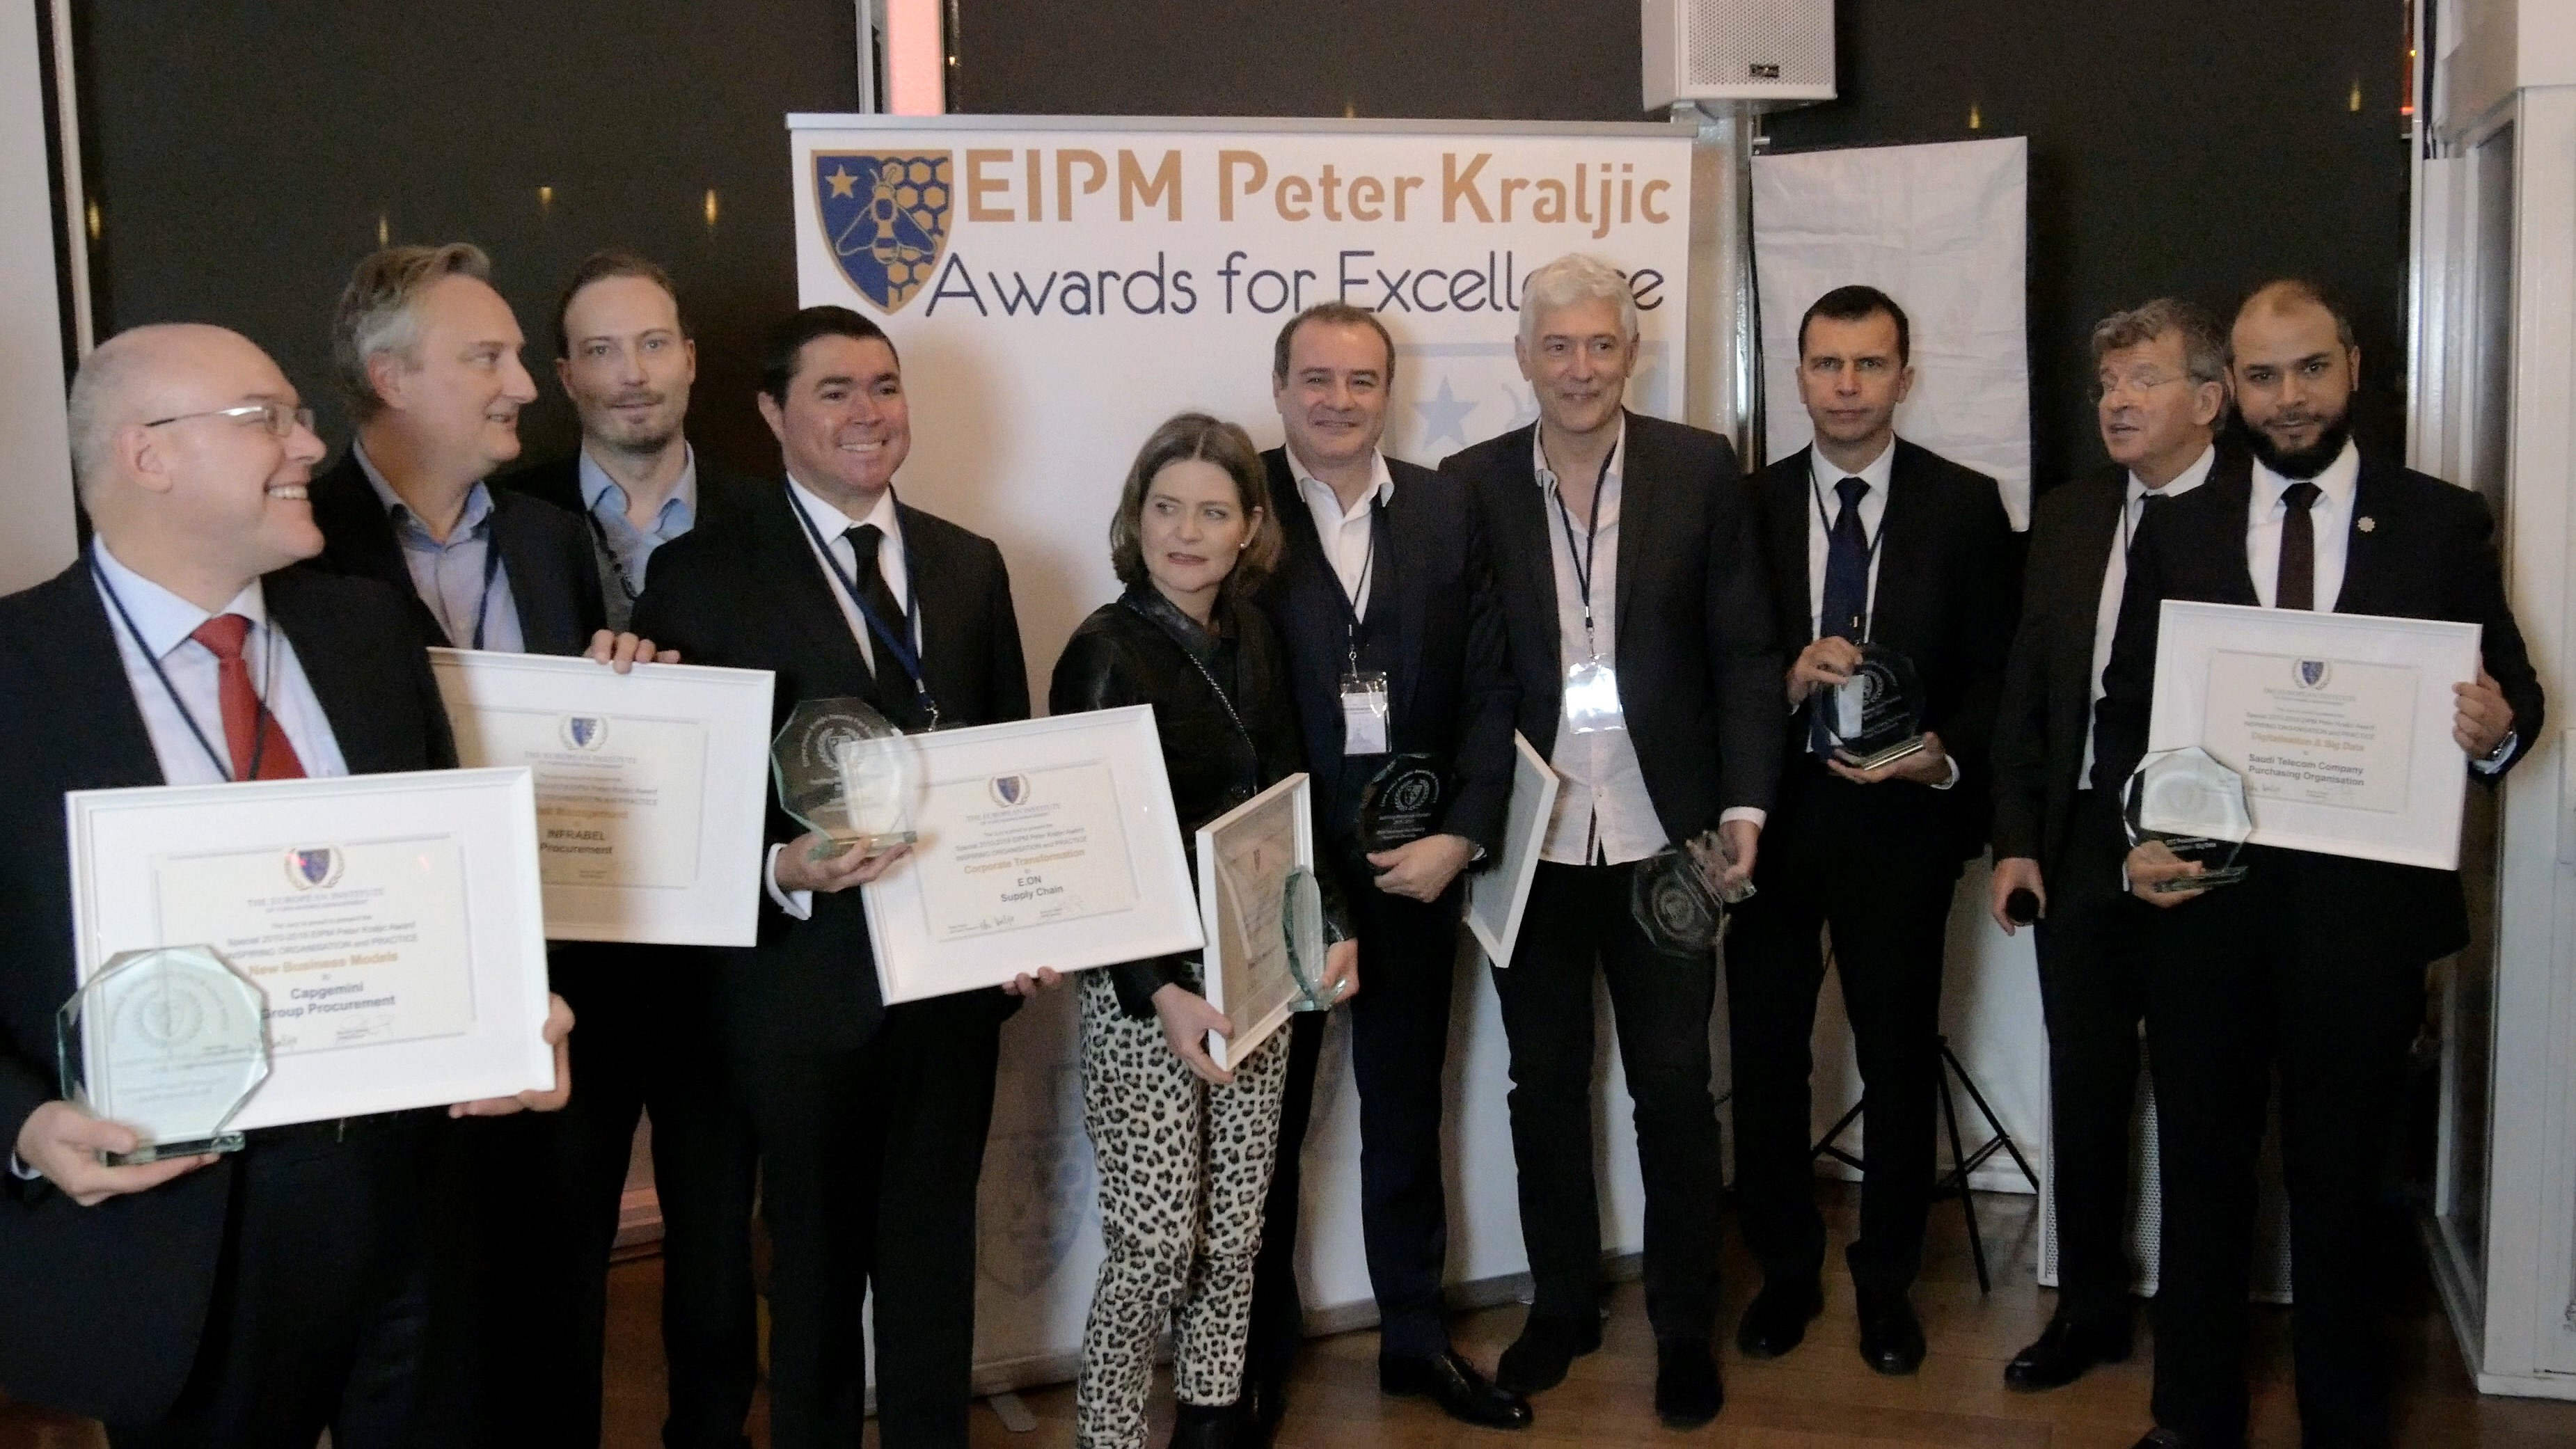 Award Winners of the Inspiring EIPM-Peter Kraljic Awards